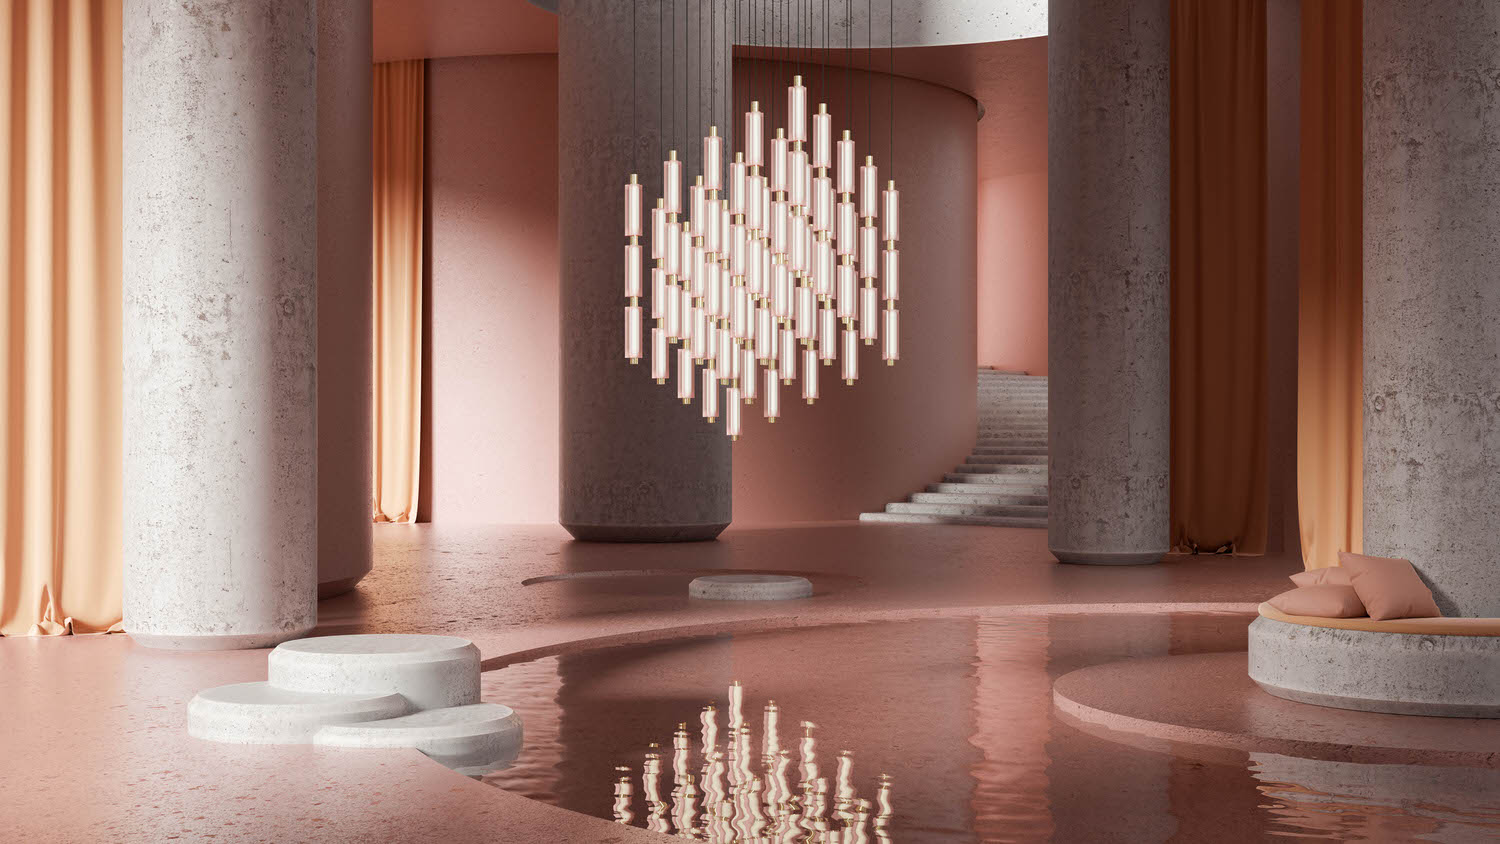 Metropol Installation Sebastian Herkner For Rakumba, Lighting Design | Yellowtrace